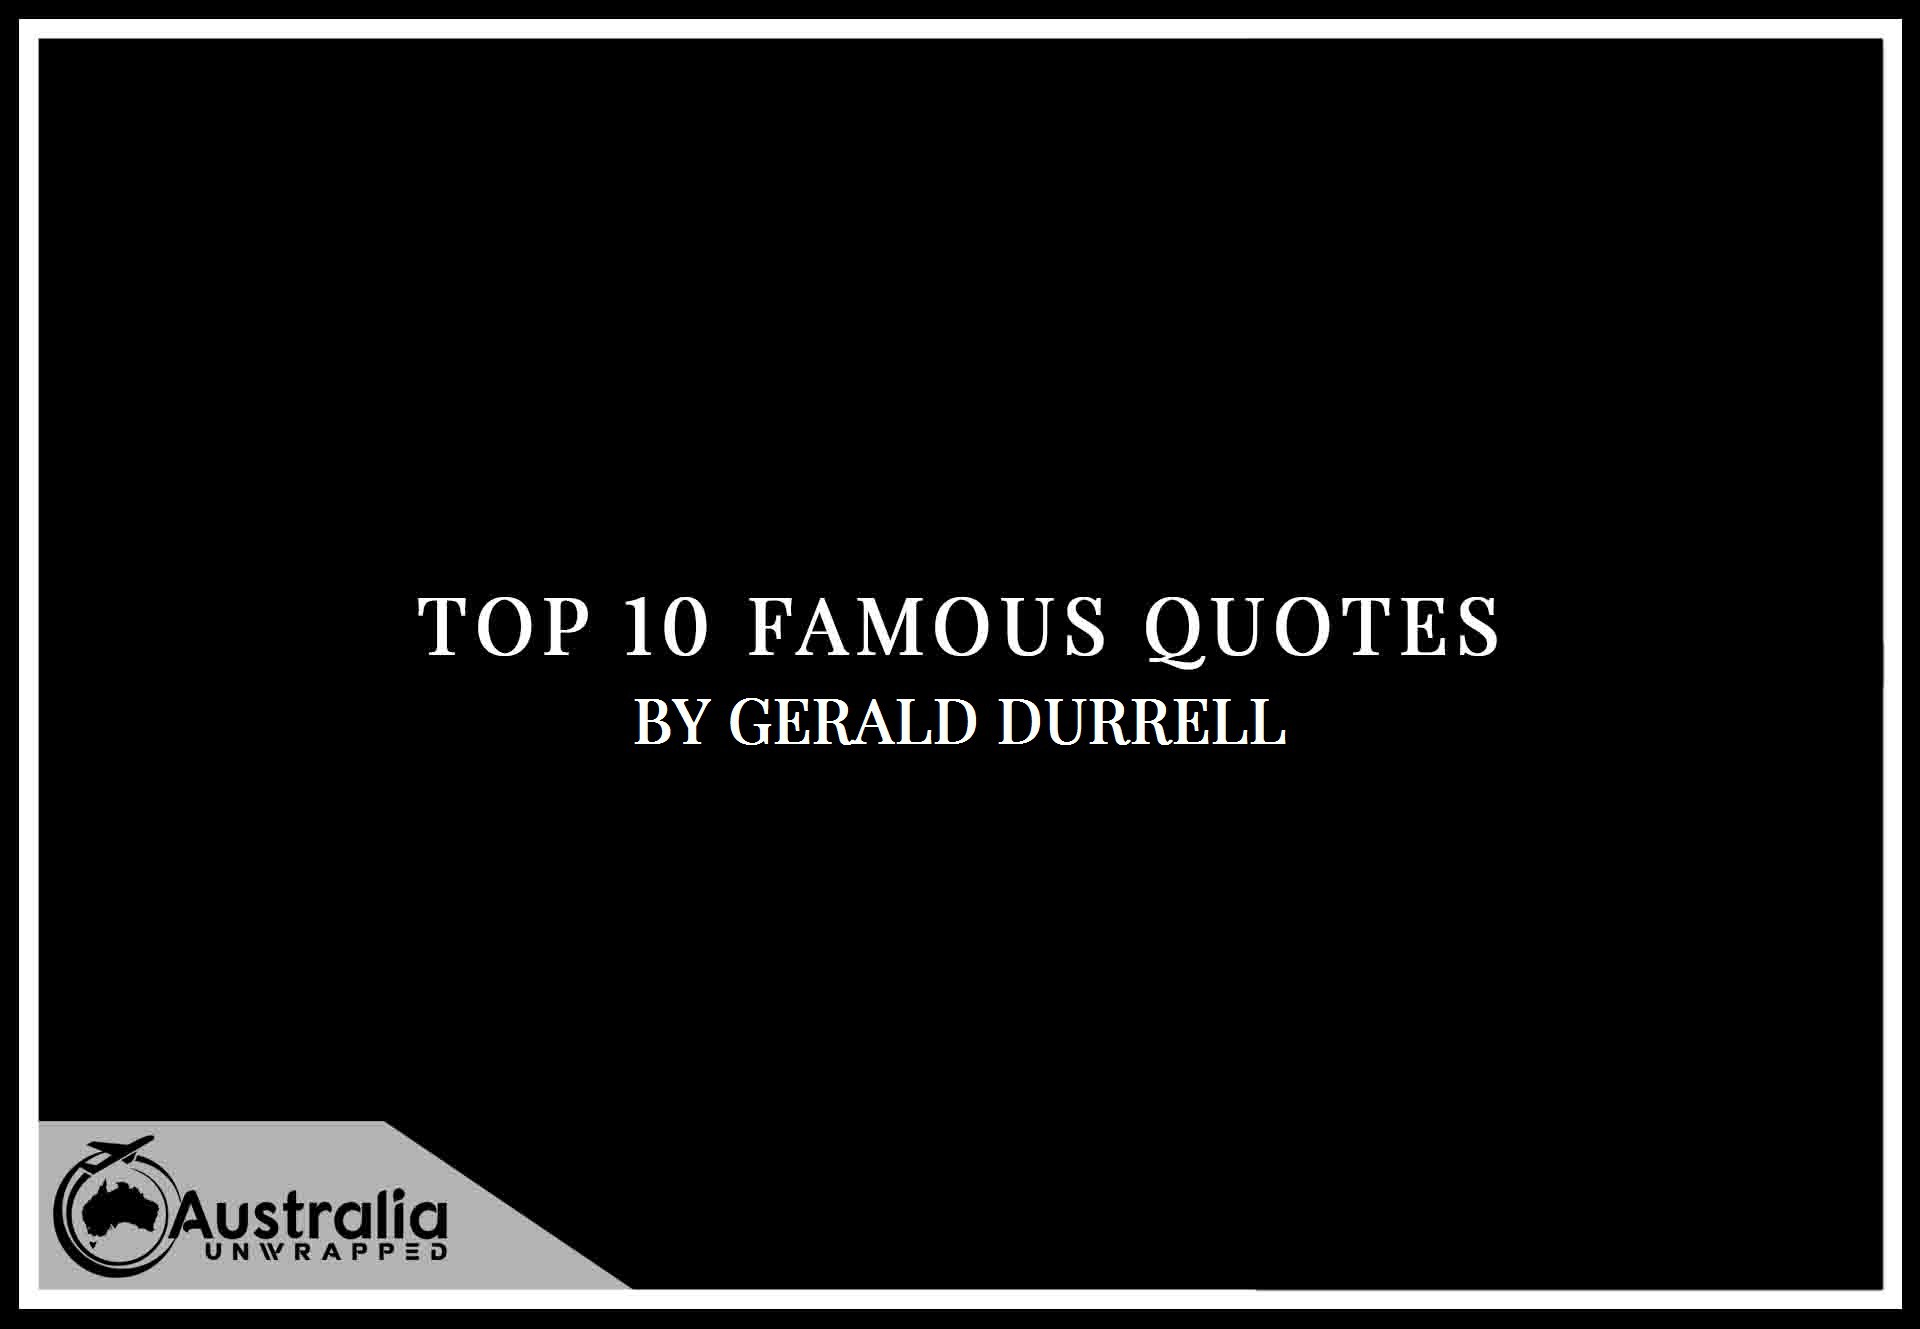 Gerald Durrell's Top 10 Popular and Famous Quotes